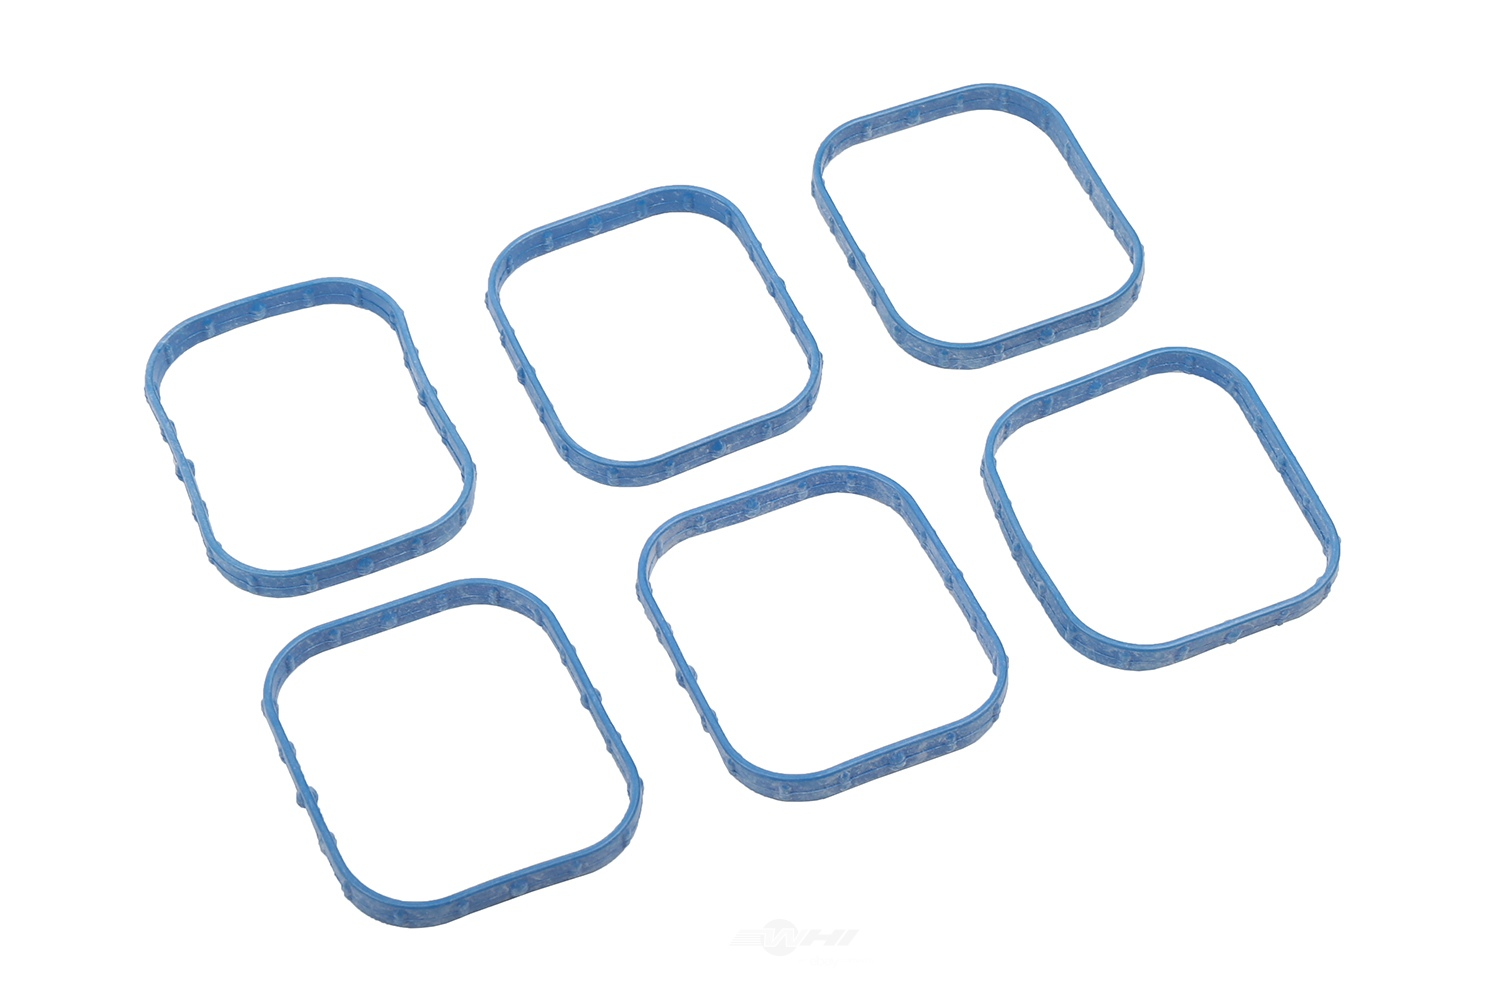 ACDELCO GM ORIGINAL EQUIPMENT - Engine Intake Manifold Gasket Set (Upper) - DCB 12647263